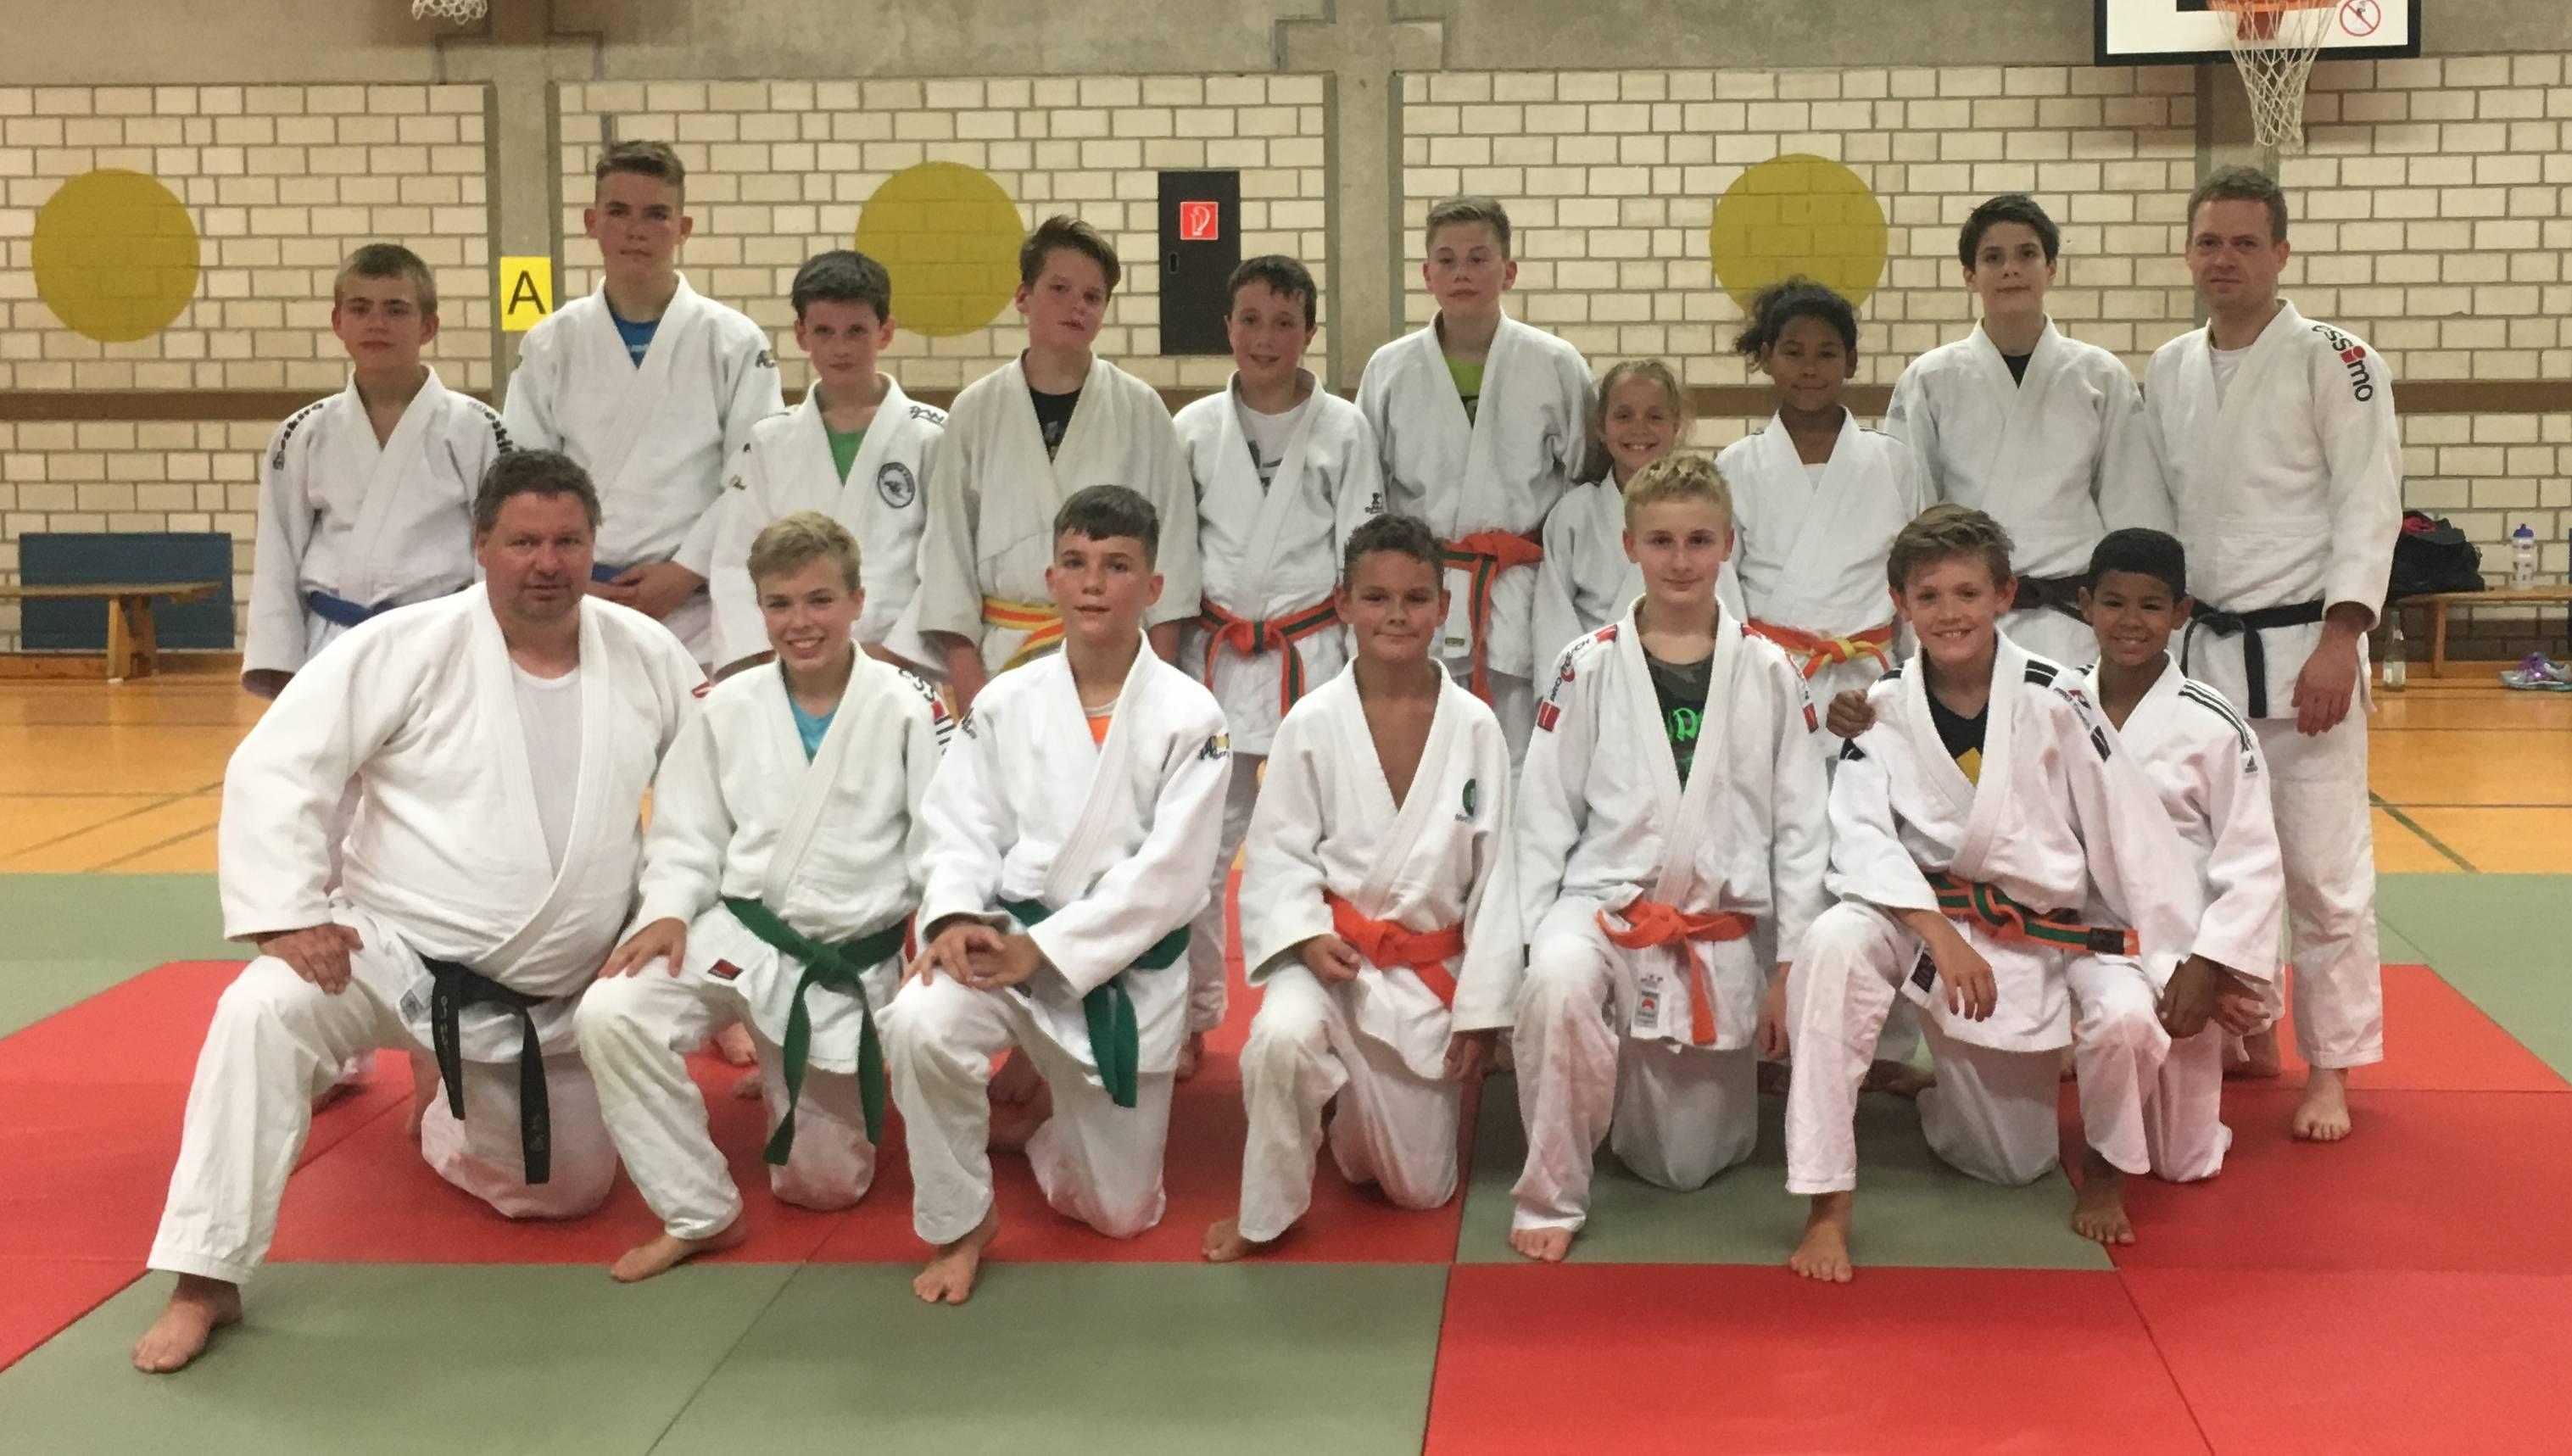 2017 September 11 erstes JG Training